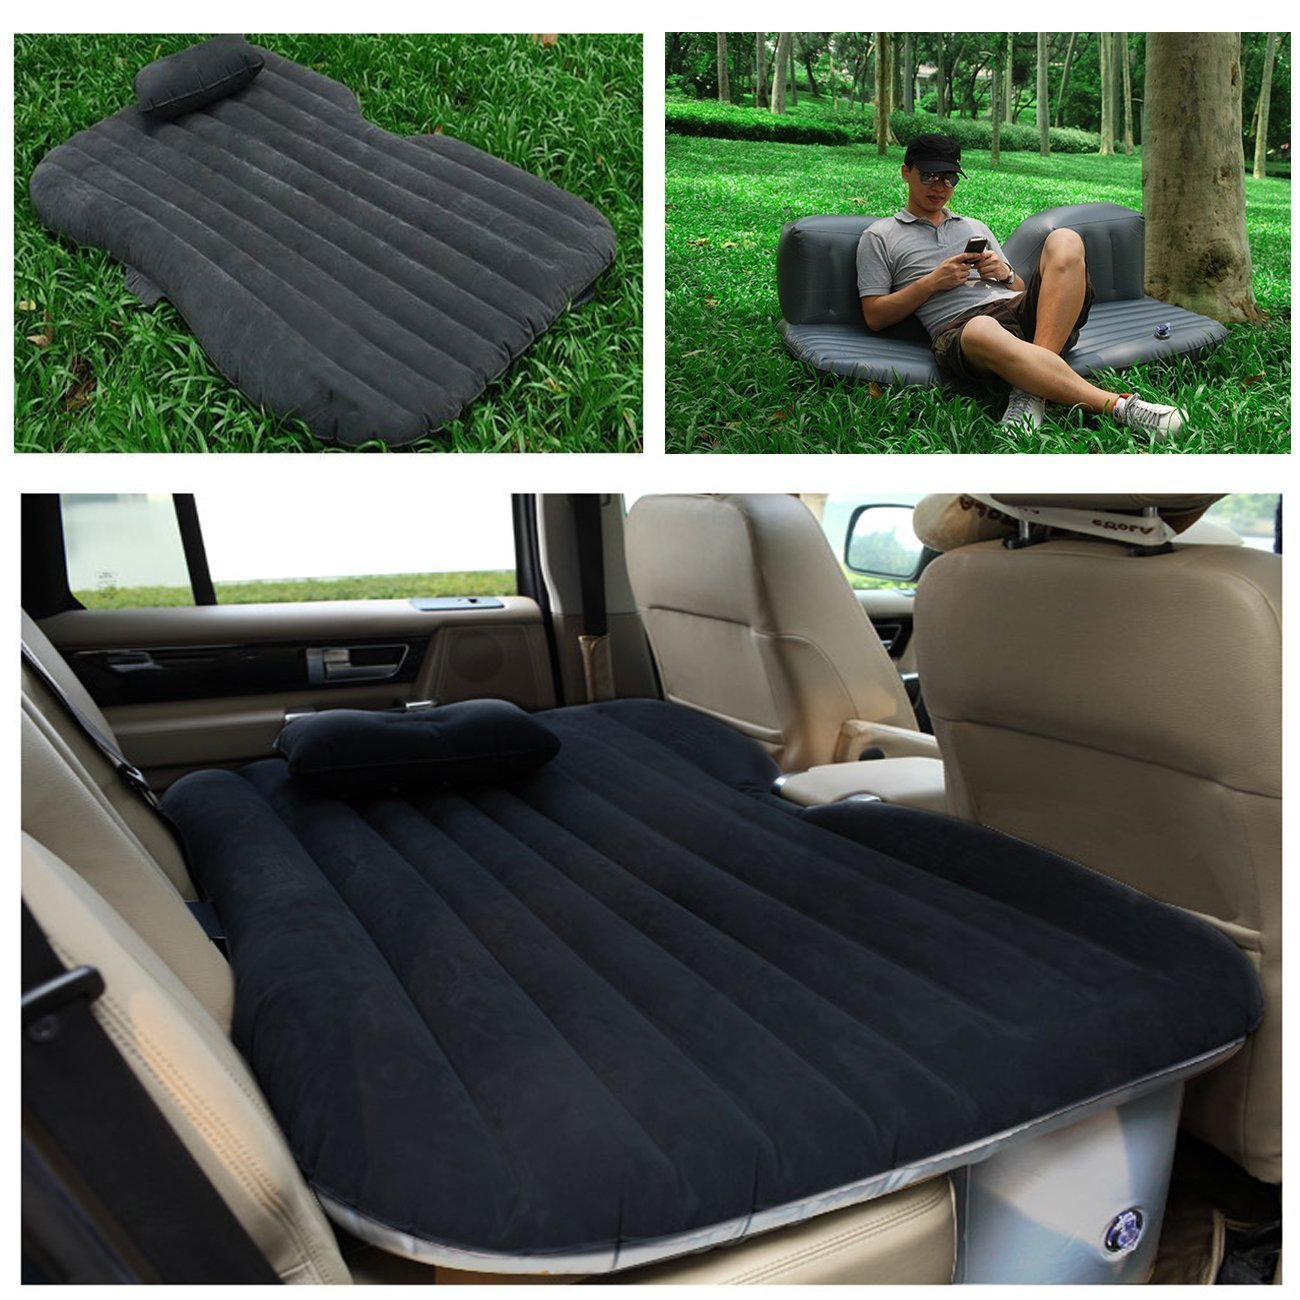 Amazon.com : ASJ Car Travel Inflatable Mattress Inflatable ...